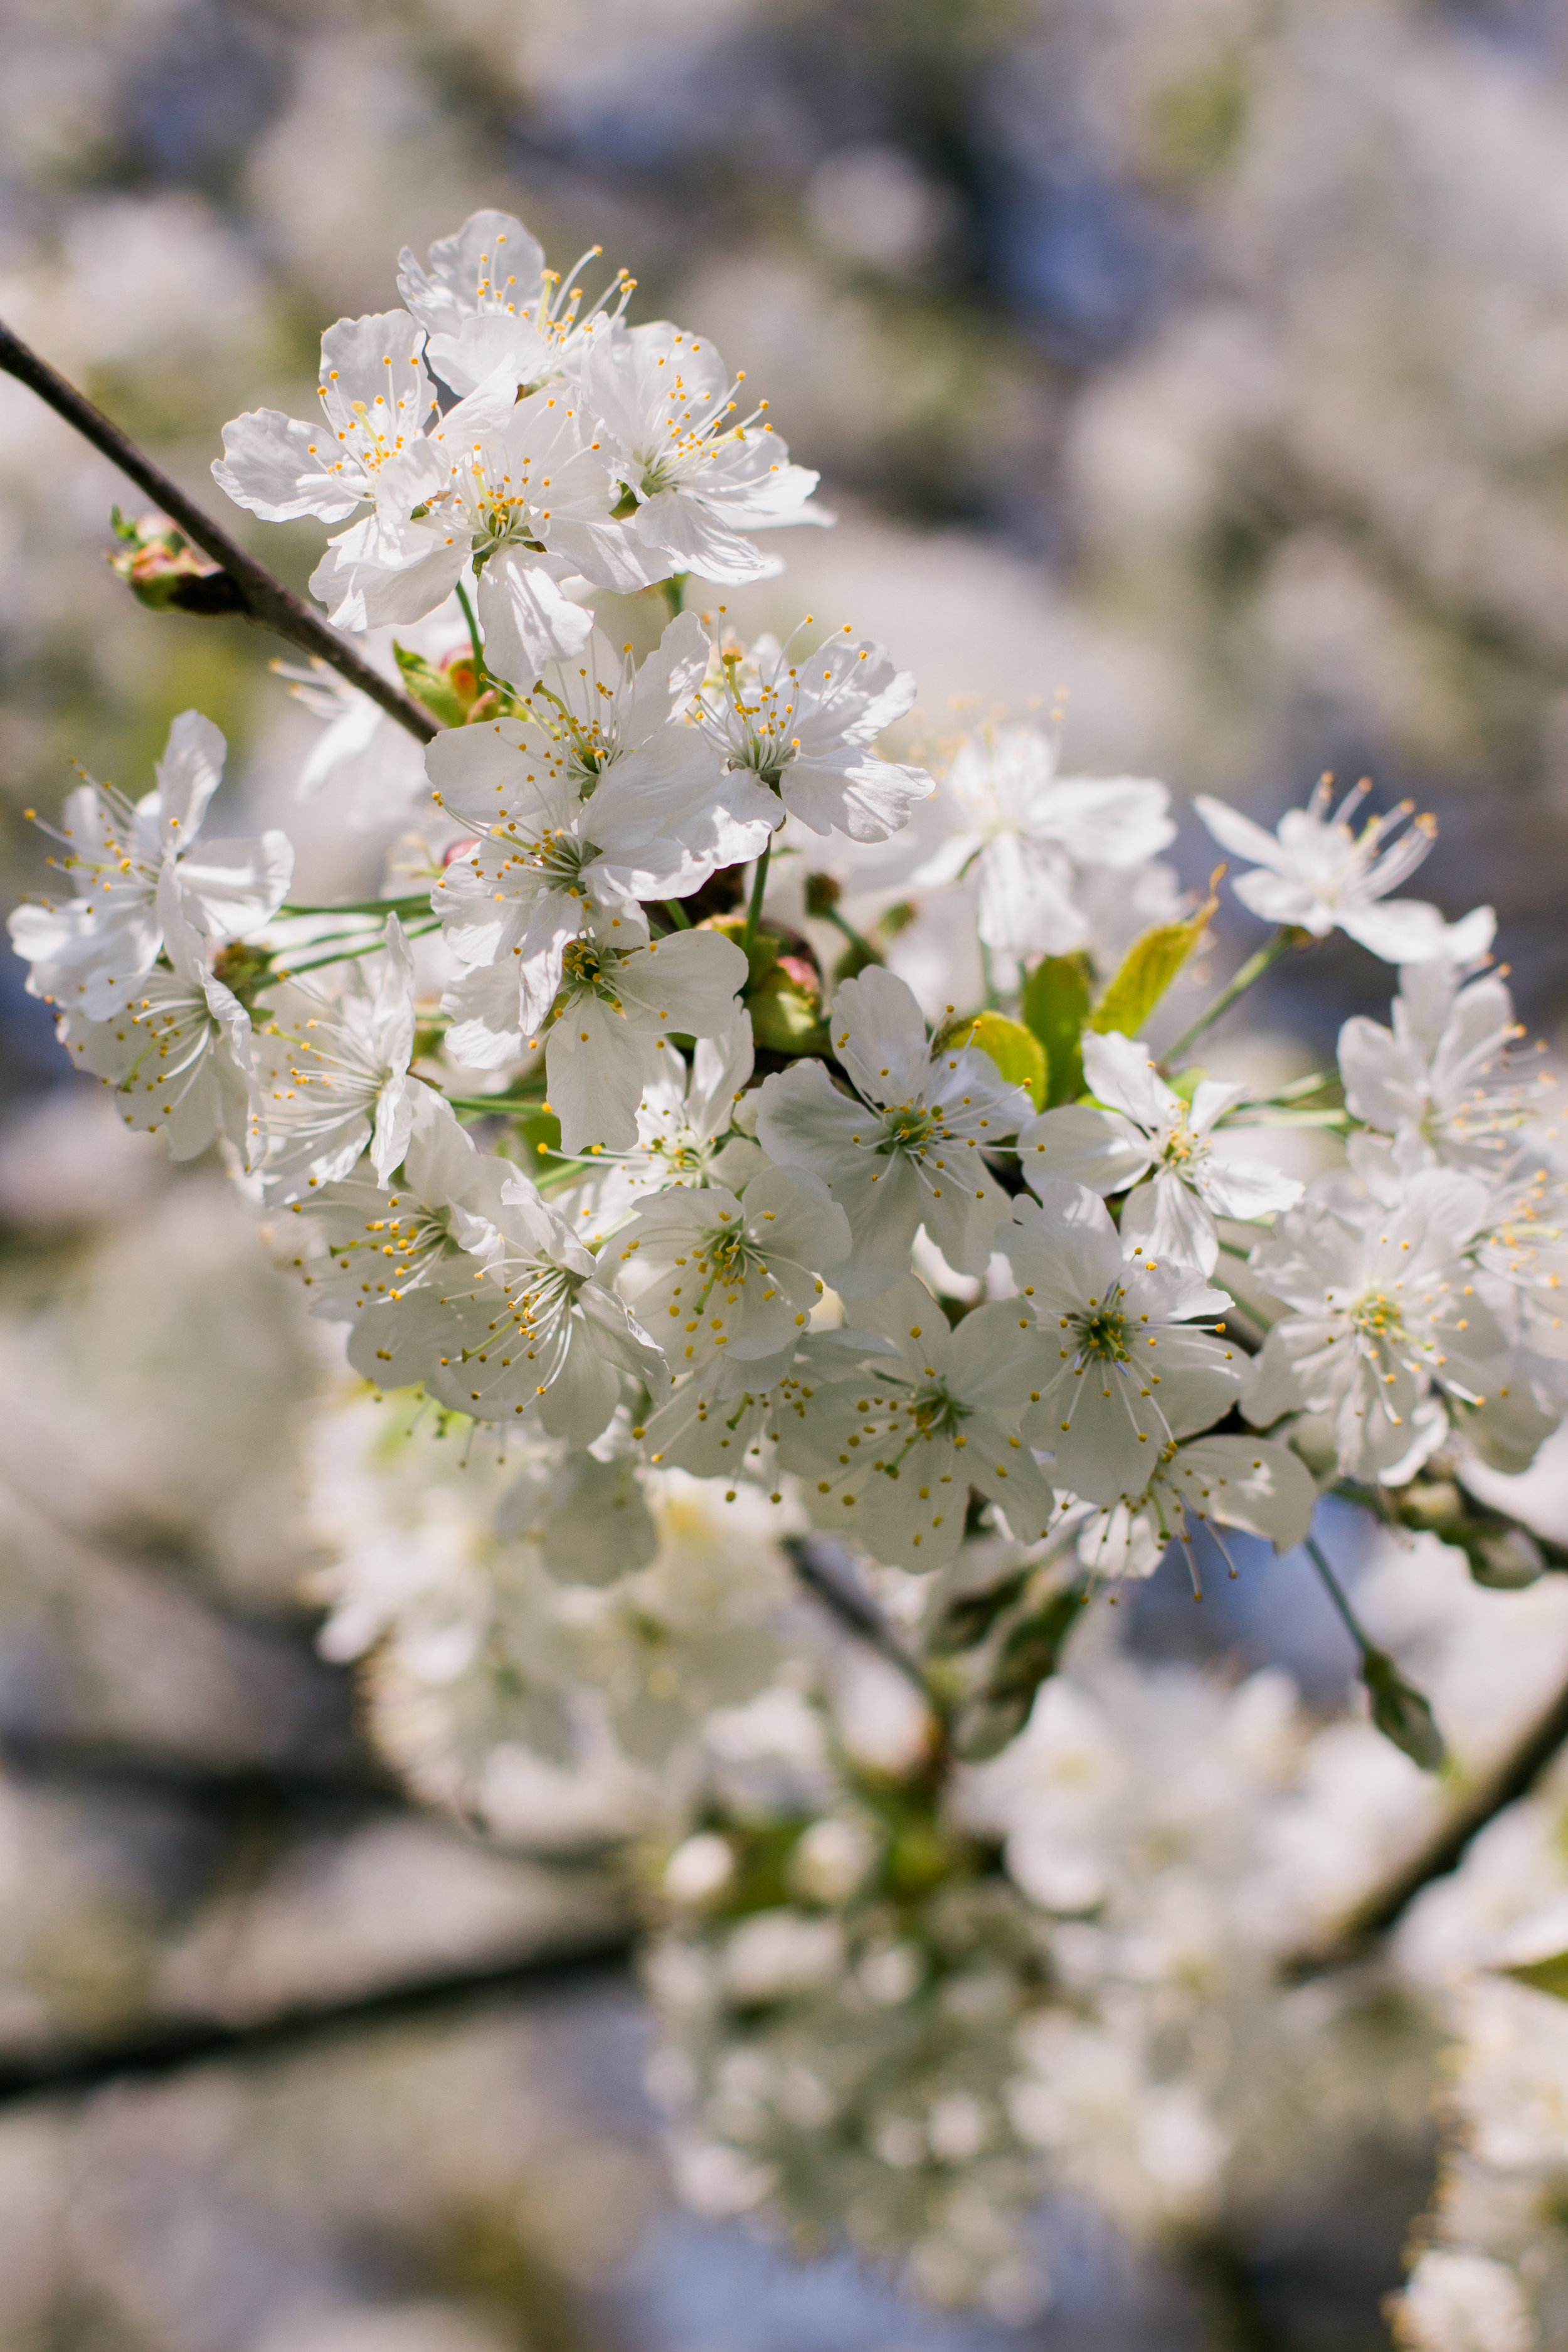 Cherry blossoms in Hampstead Heath park in London